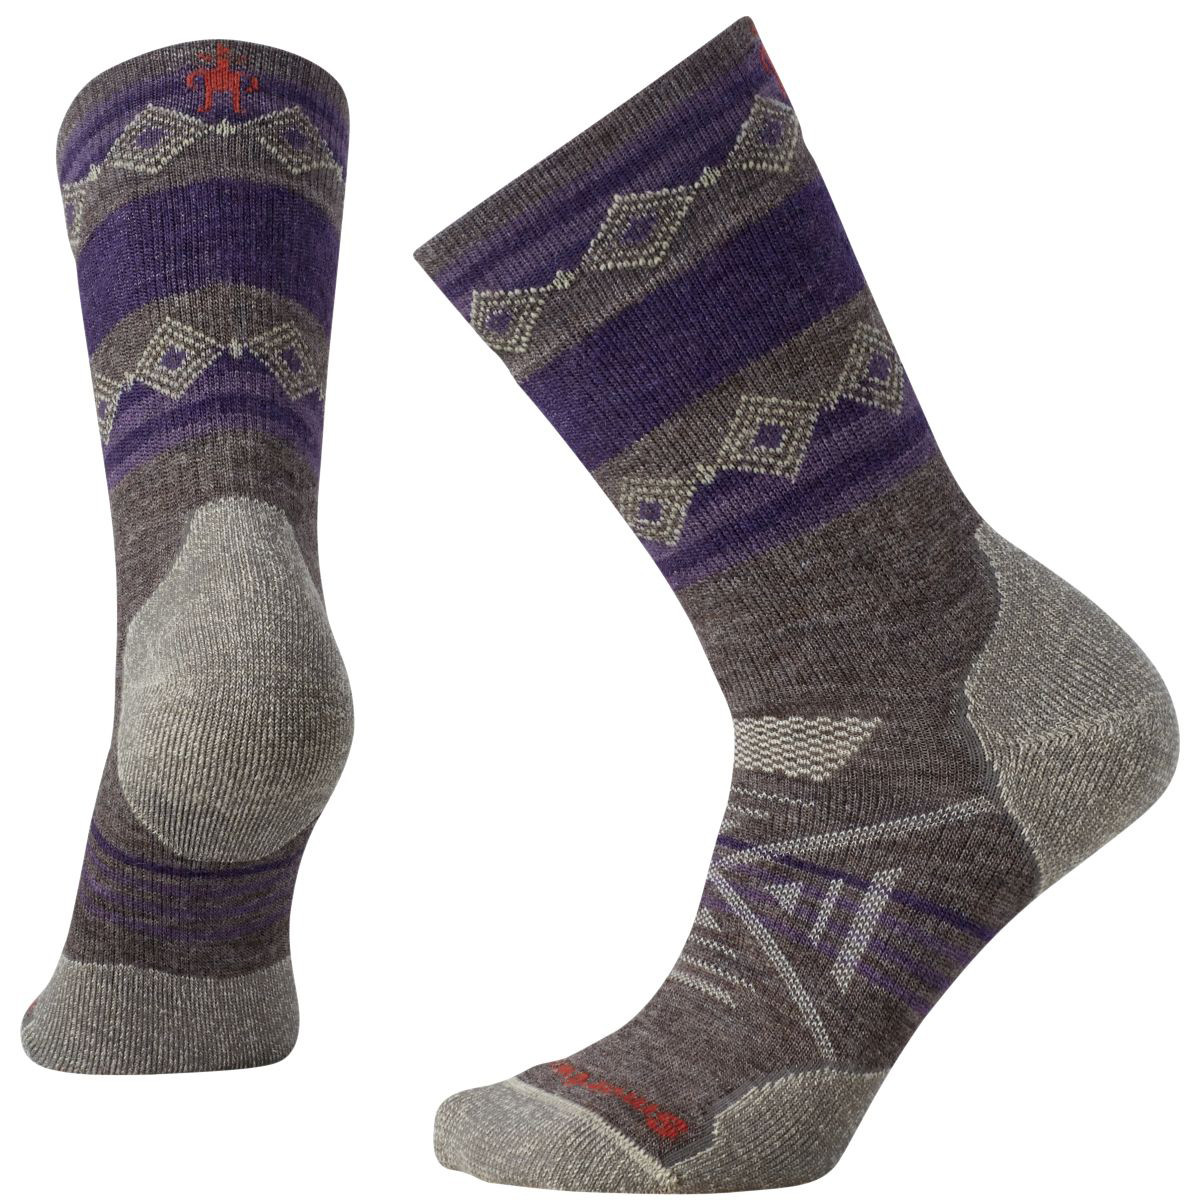 Patterned socks New Smartwool Women's Phd Outdoor Medium Patterned Crew socks Of Superb 48 Images Patterned socks